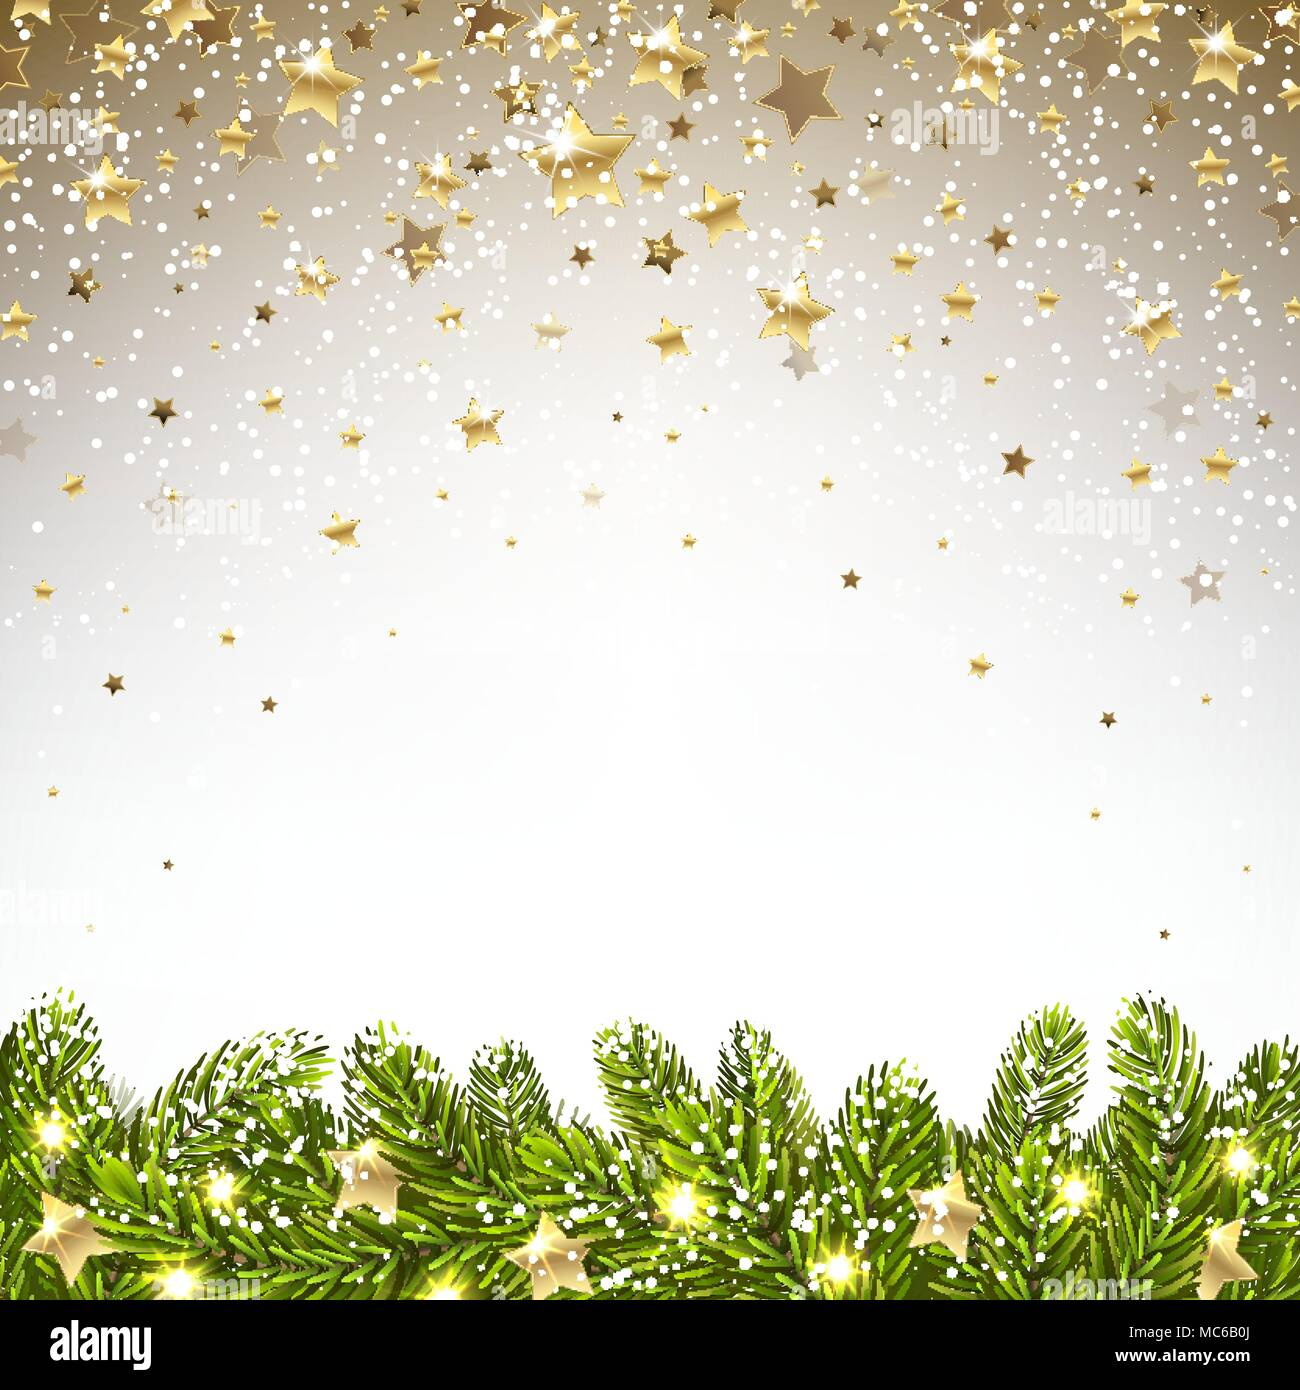 christmas background with falling stars and spruce branches - Stock Vector